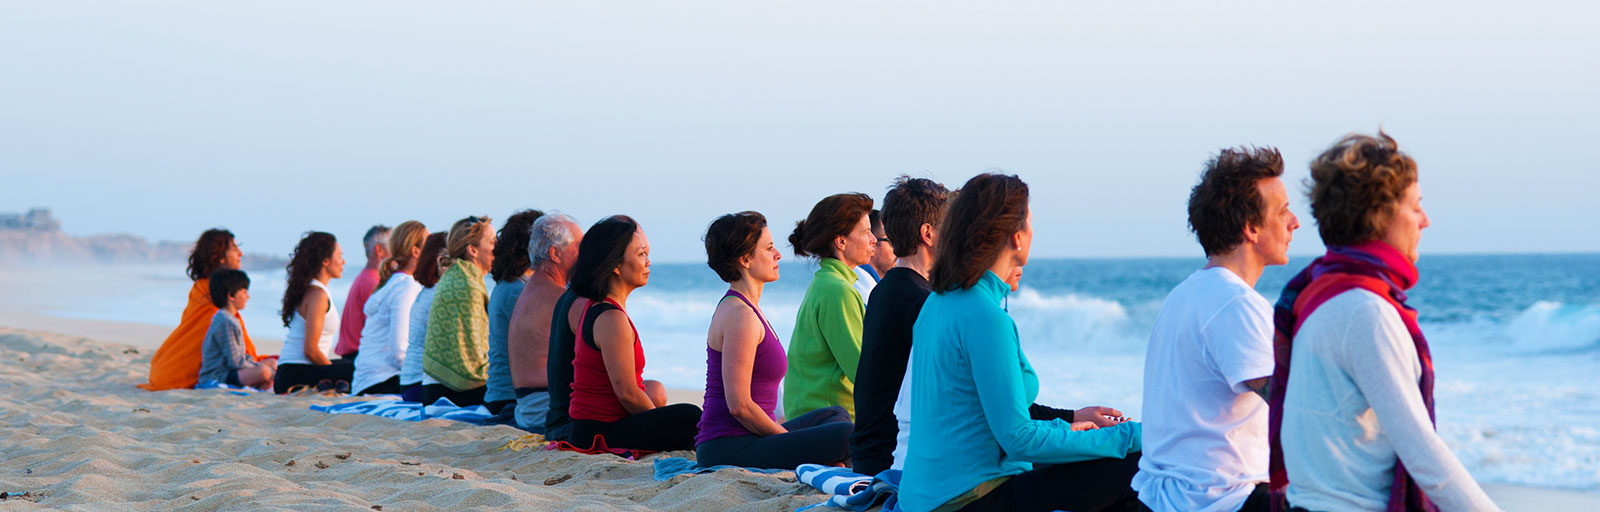 Mexico Yoga Retreats: Meditation at the Beach